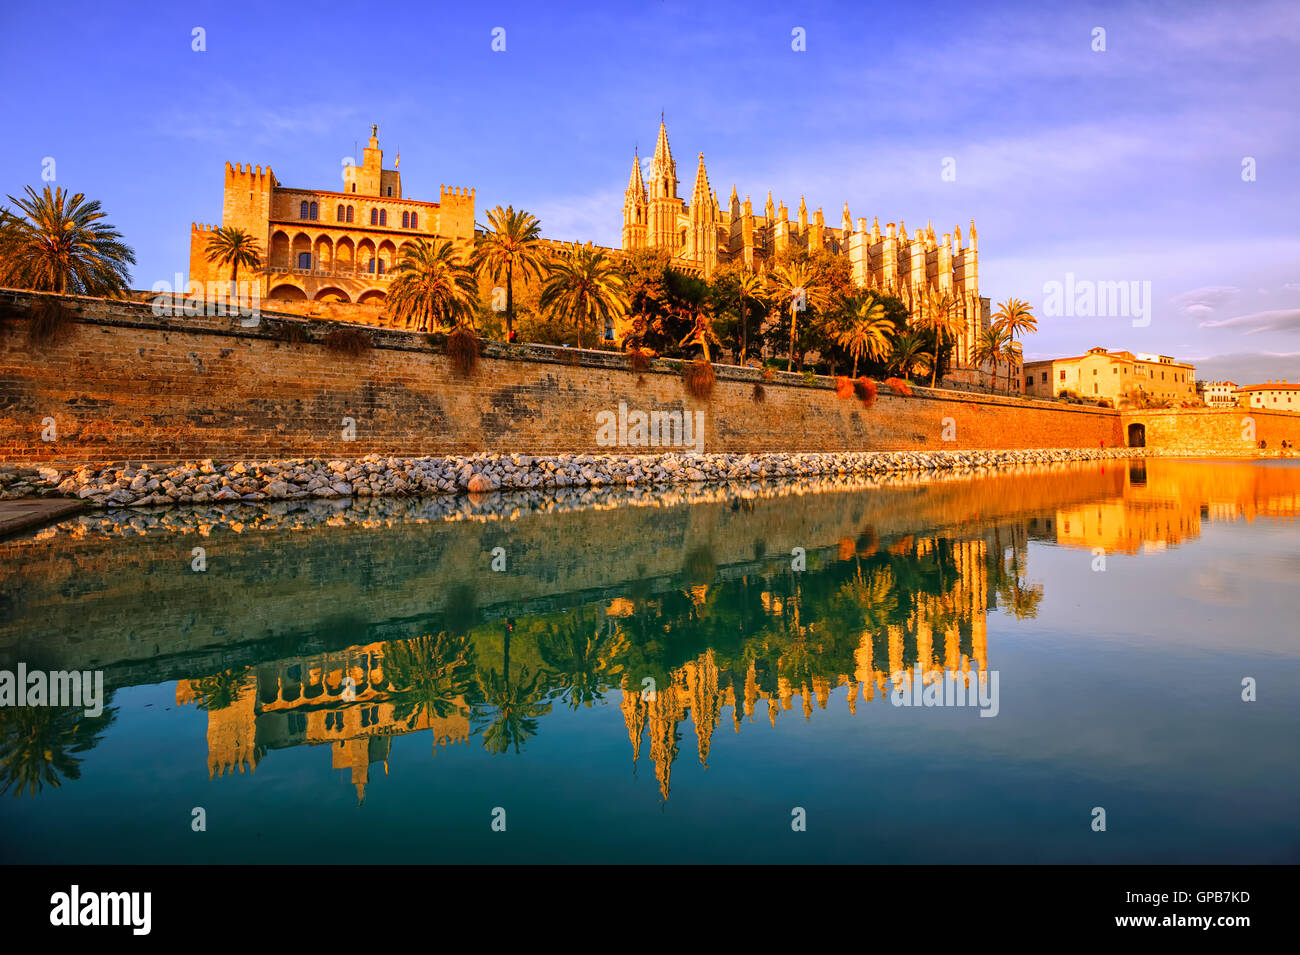 Gothic cathedral La Seu in Palma de Mallorca, Spain, reflecting in the lake water in sunset light - Stock Image